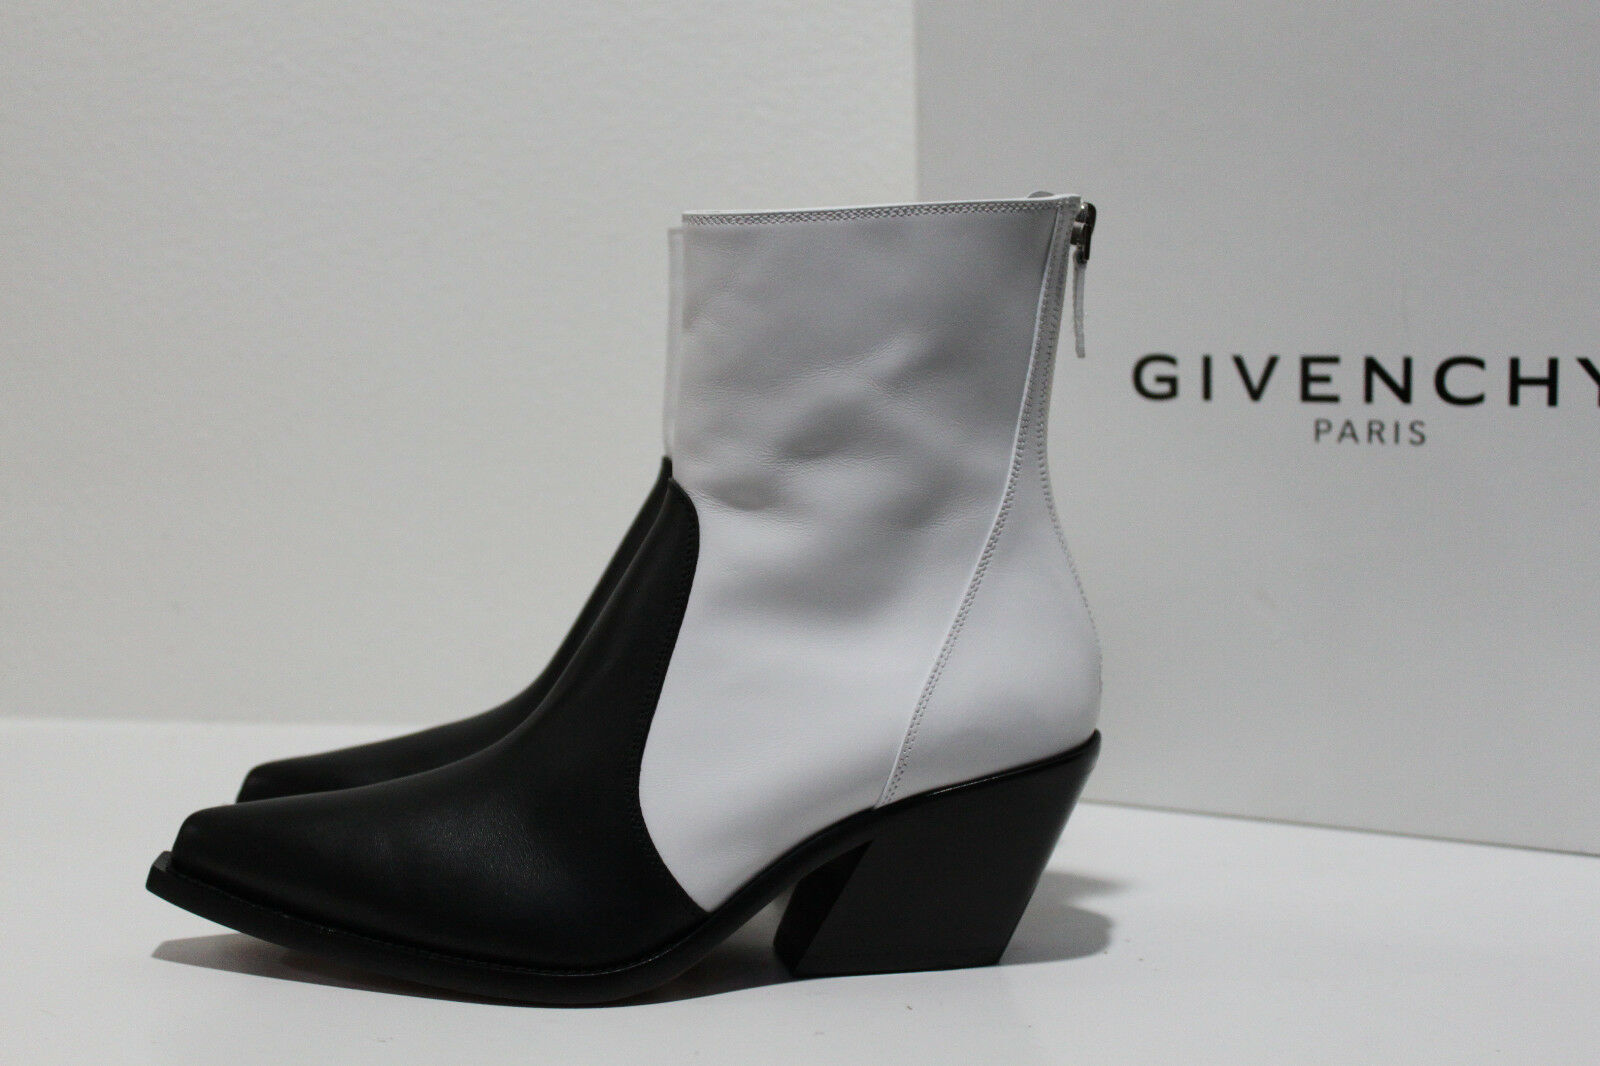 New sz 6   36 Givenchy Black & White Leather Cowboy Ankle Bootie Heel shoes